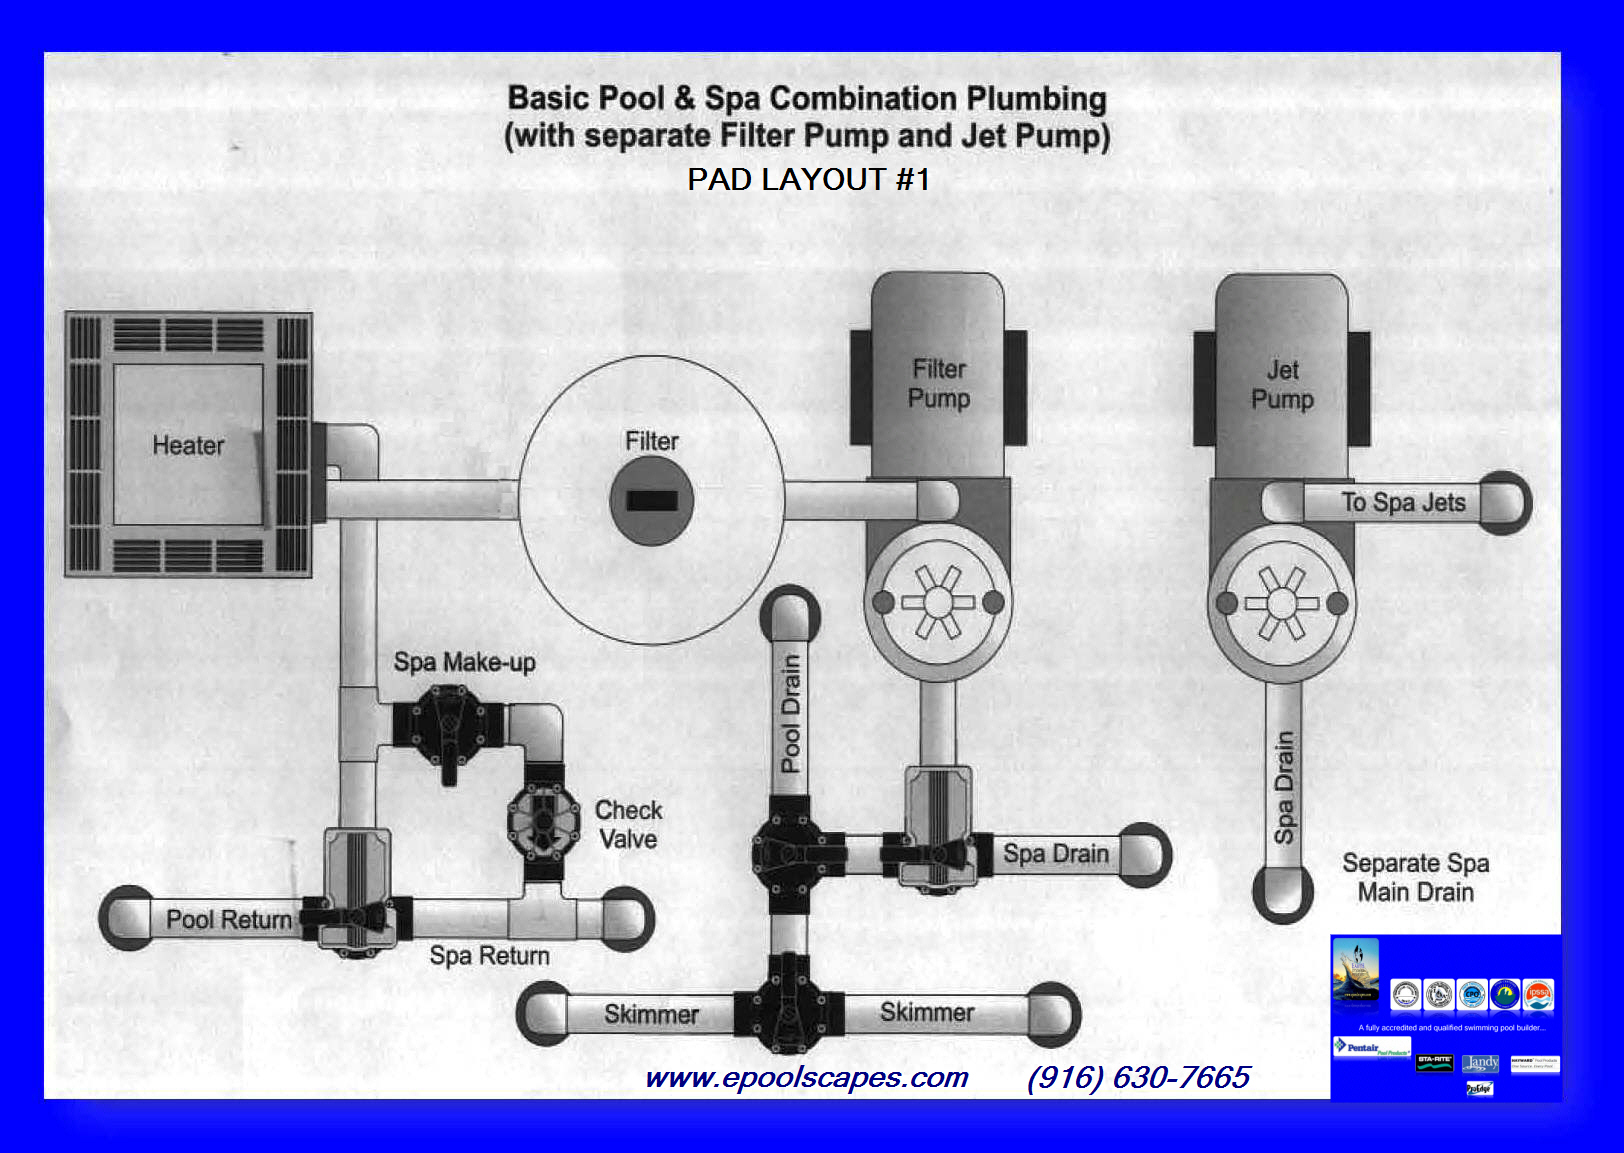 Swimming Pool Filter Pump Price Swimming Pool Equipment Pad Layouts